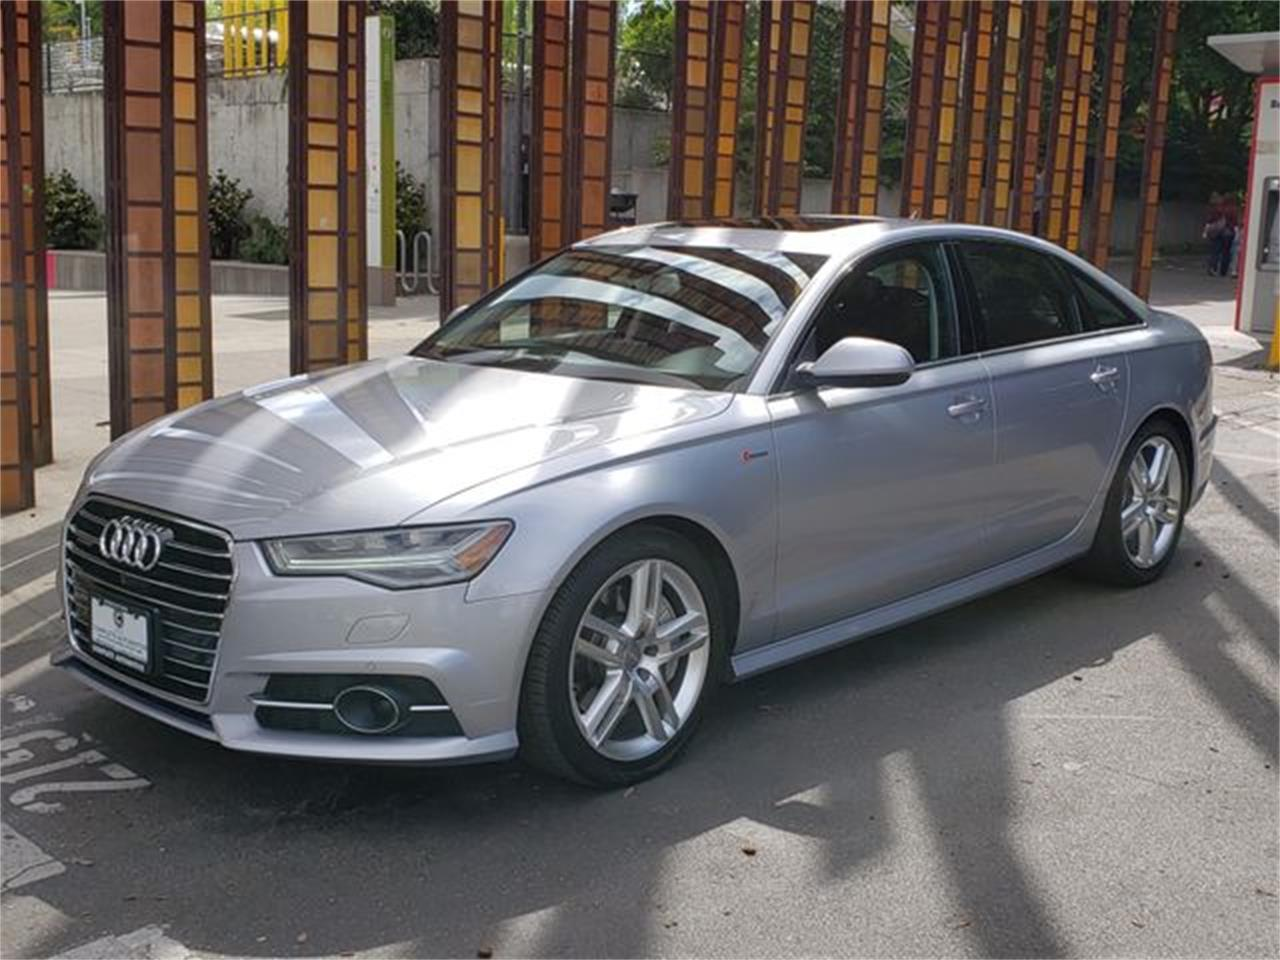 2016 Audi A6 for sale in Seattle, WA – photo 3